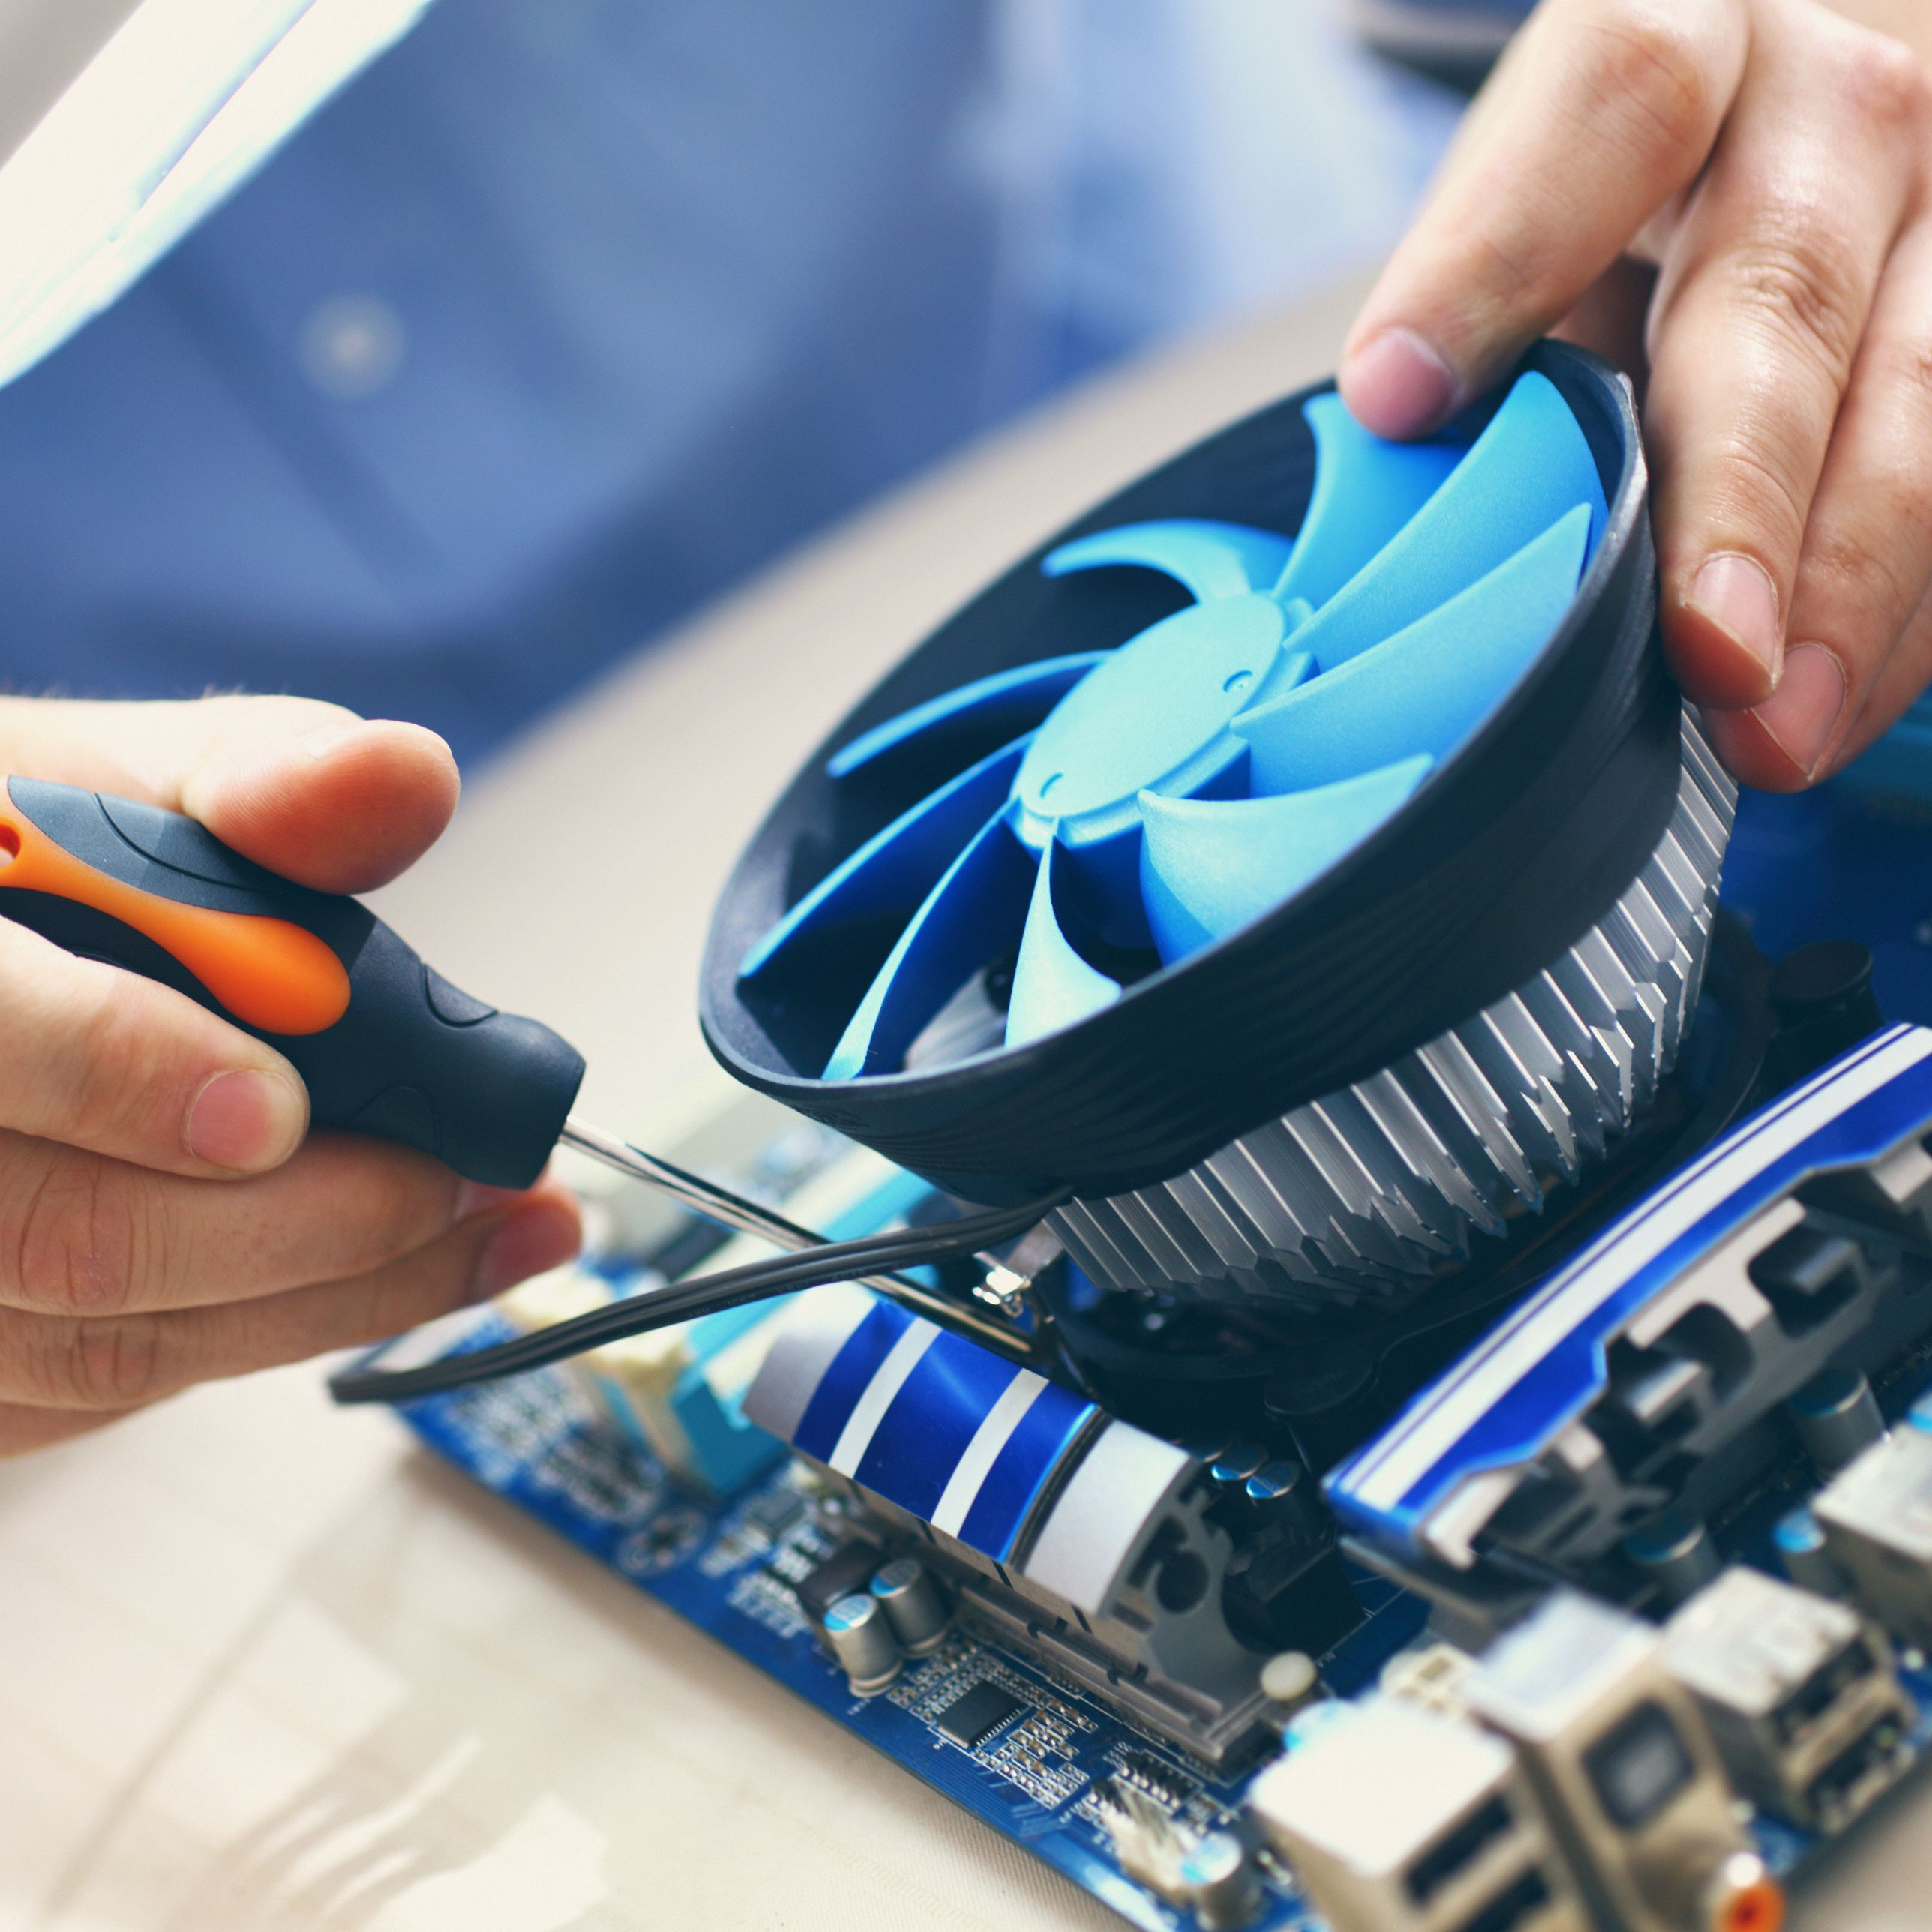 How to Fix a Computer Fan That's Loud or Making Noise